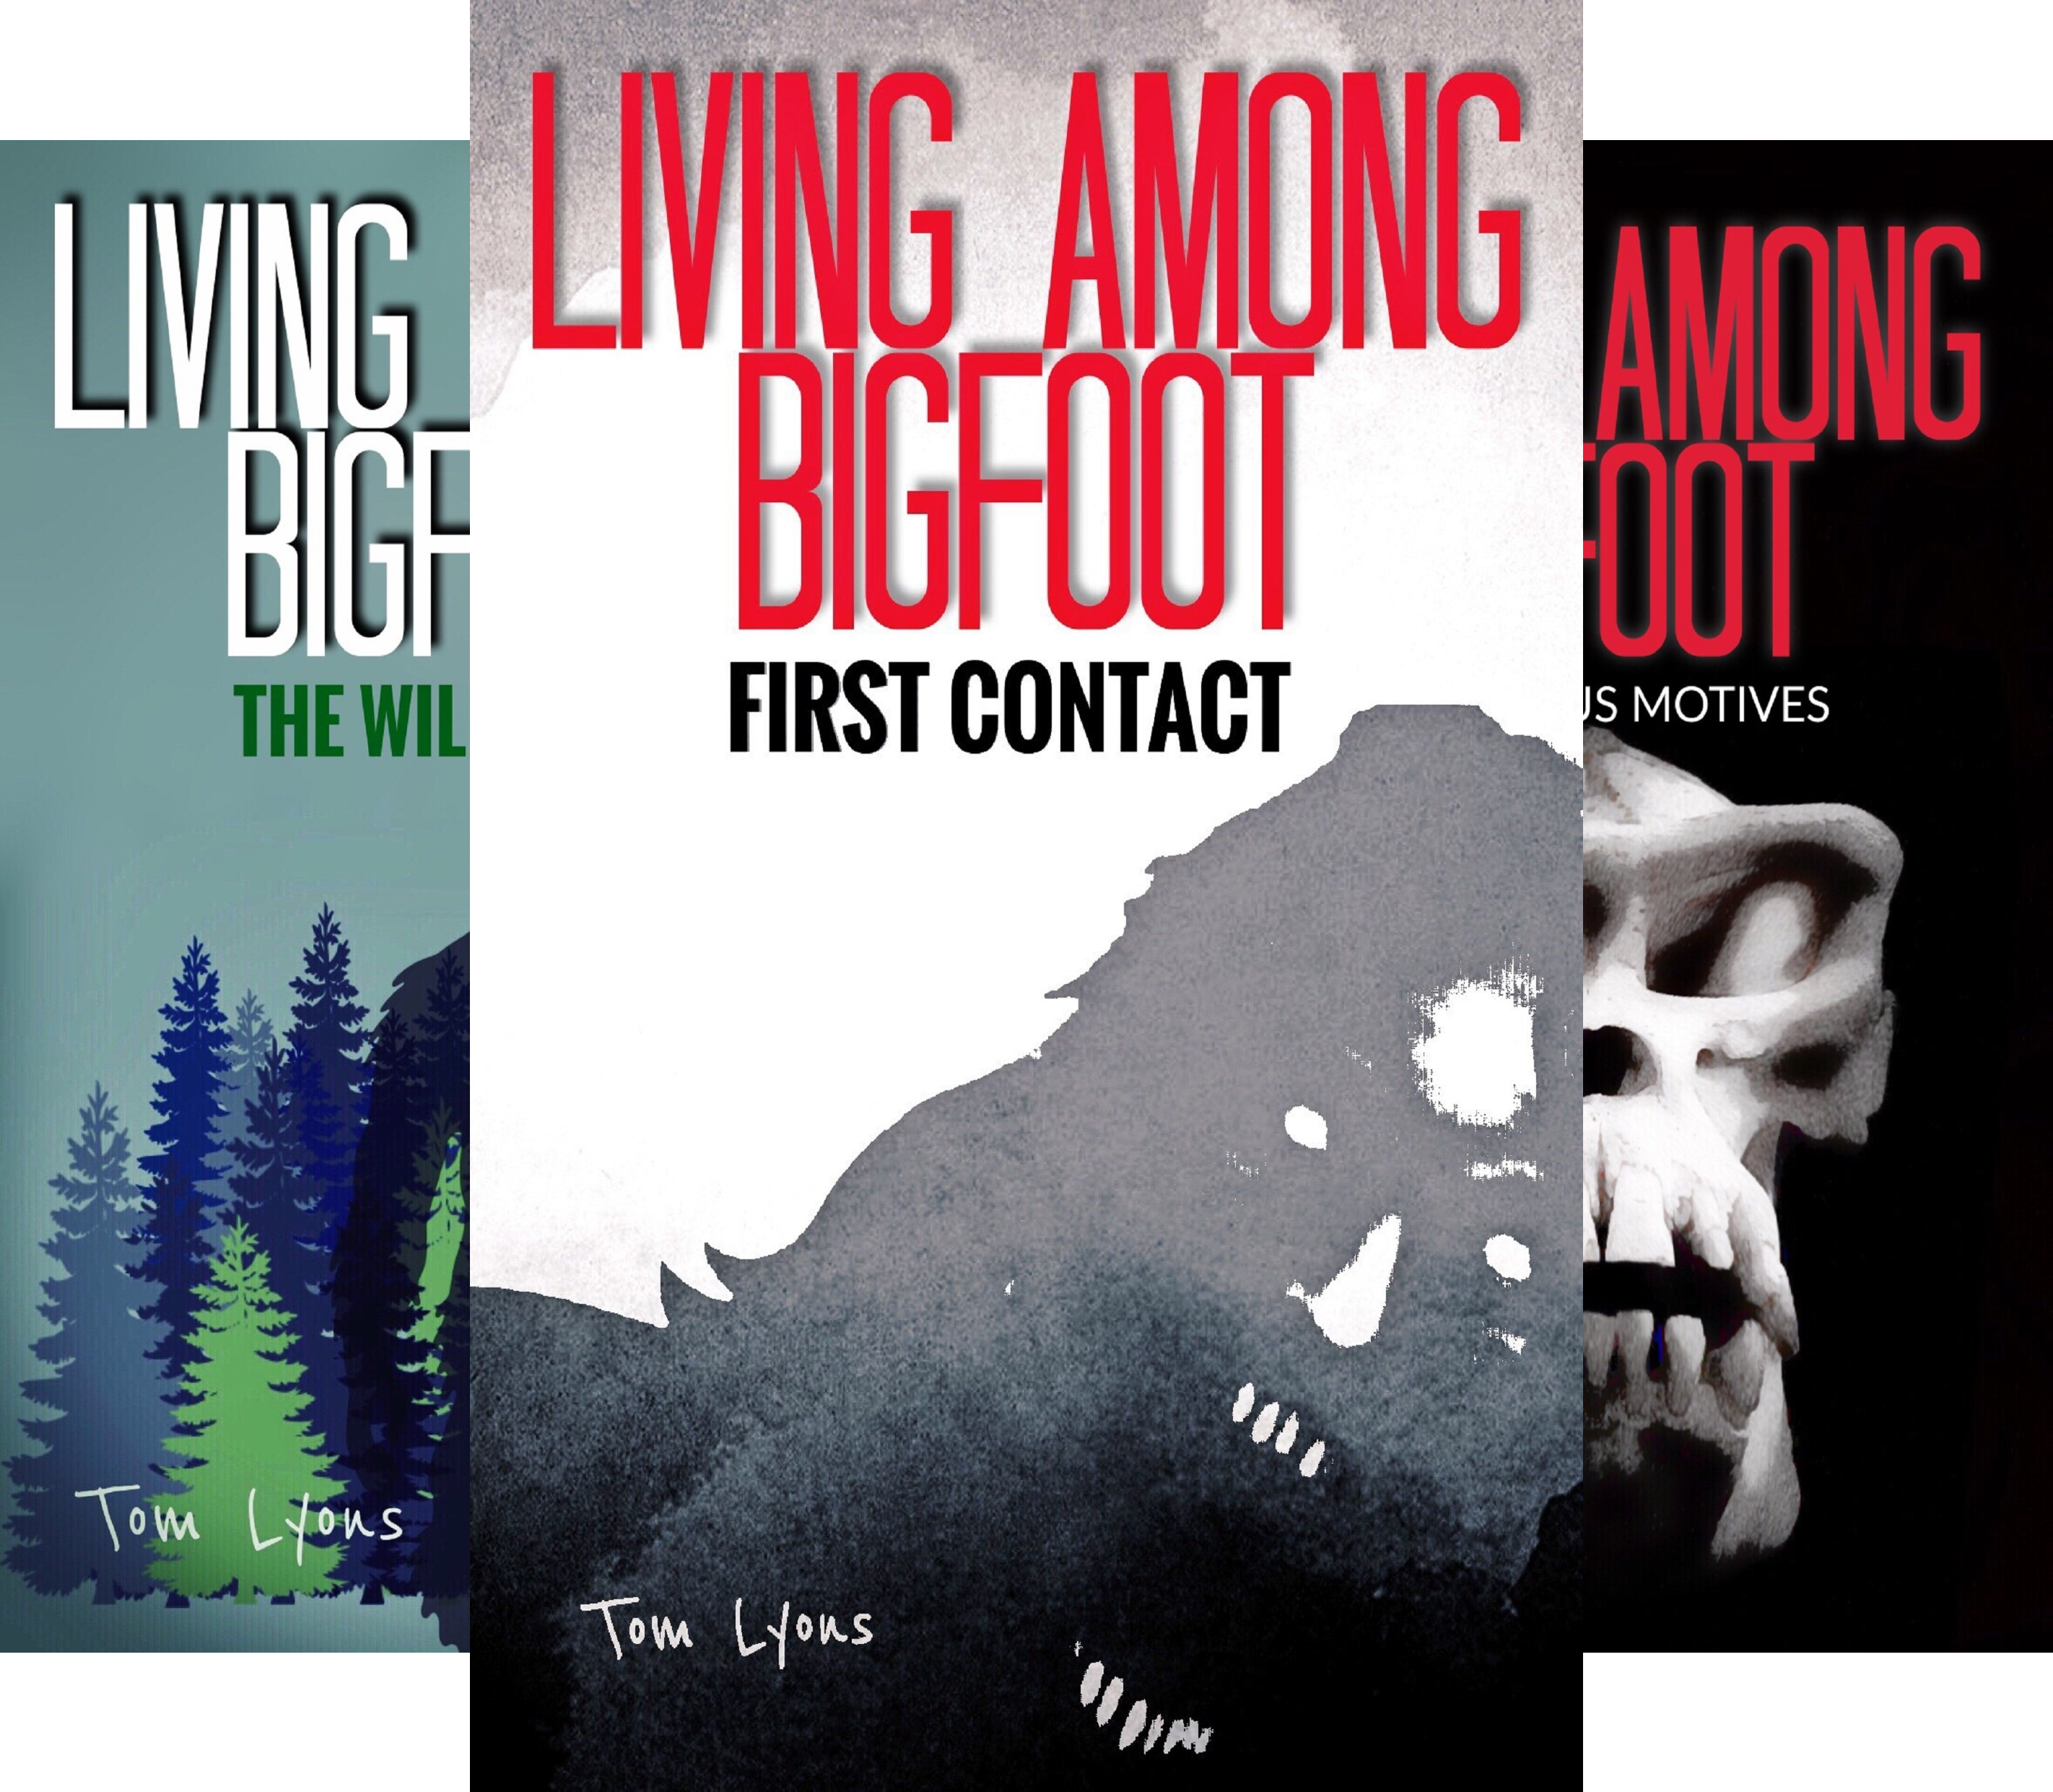 Living Among Bigfoot (9 Book Series)